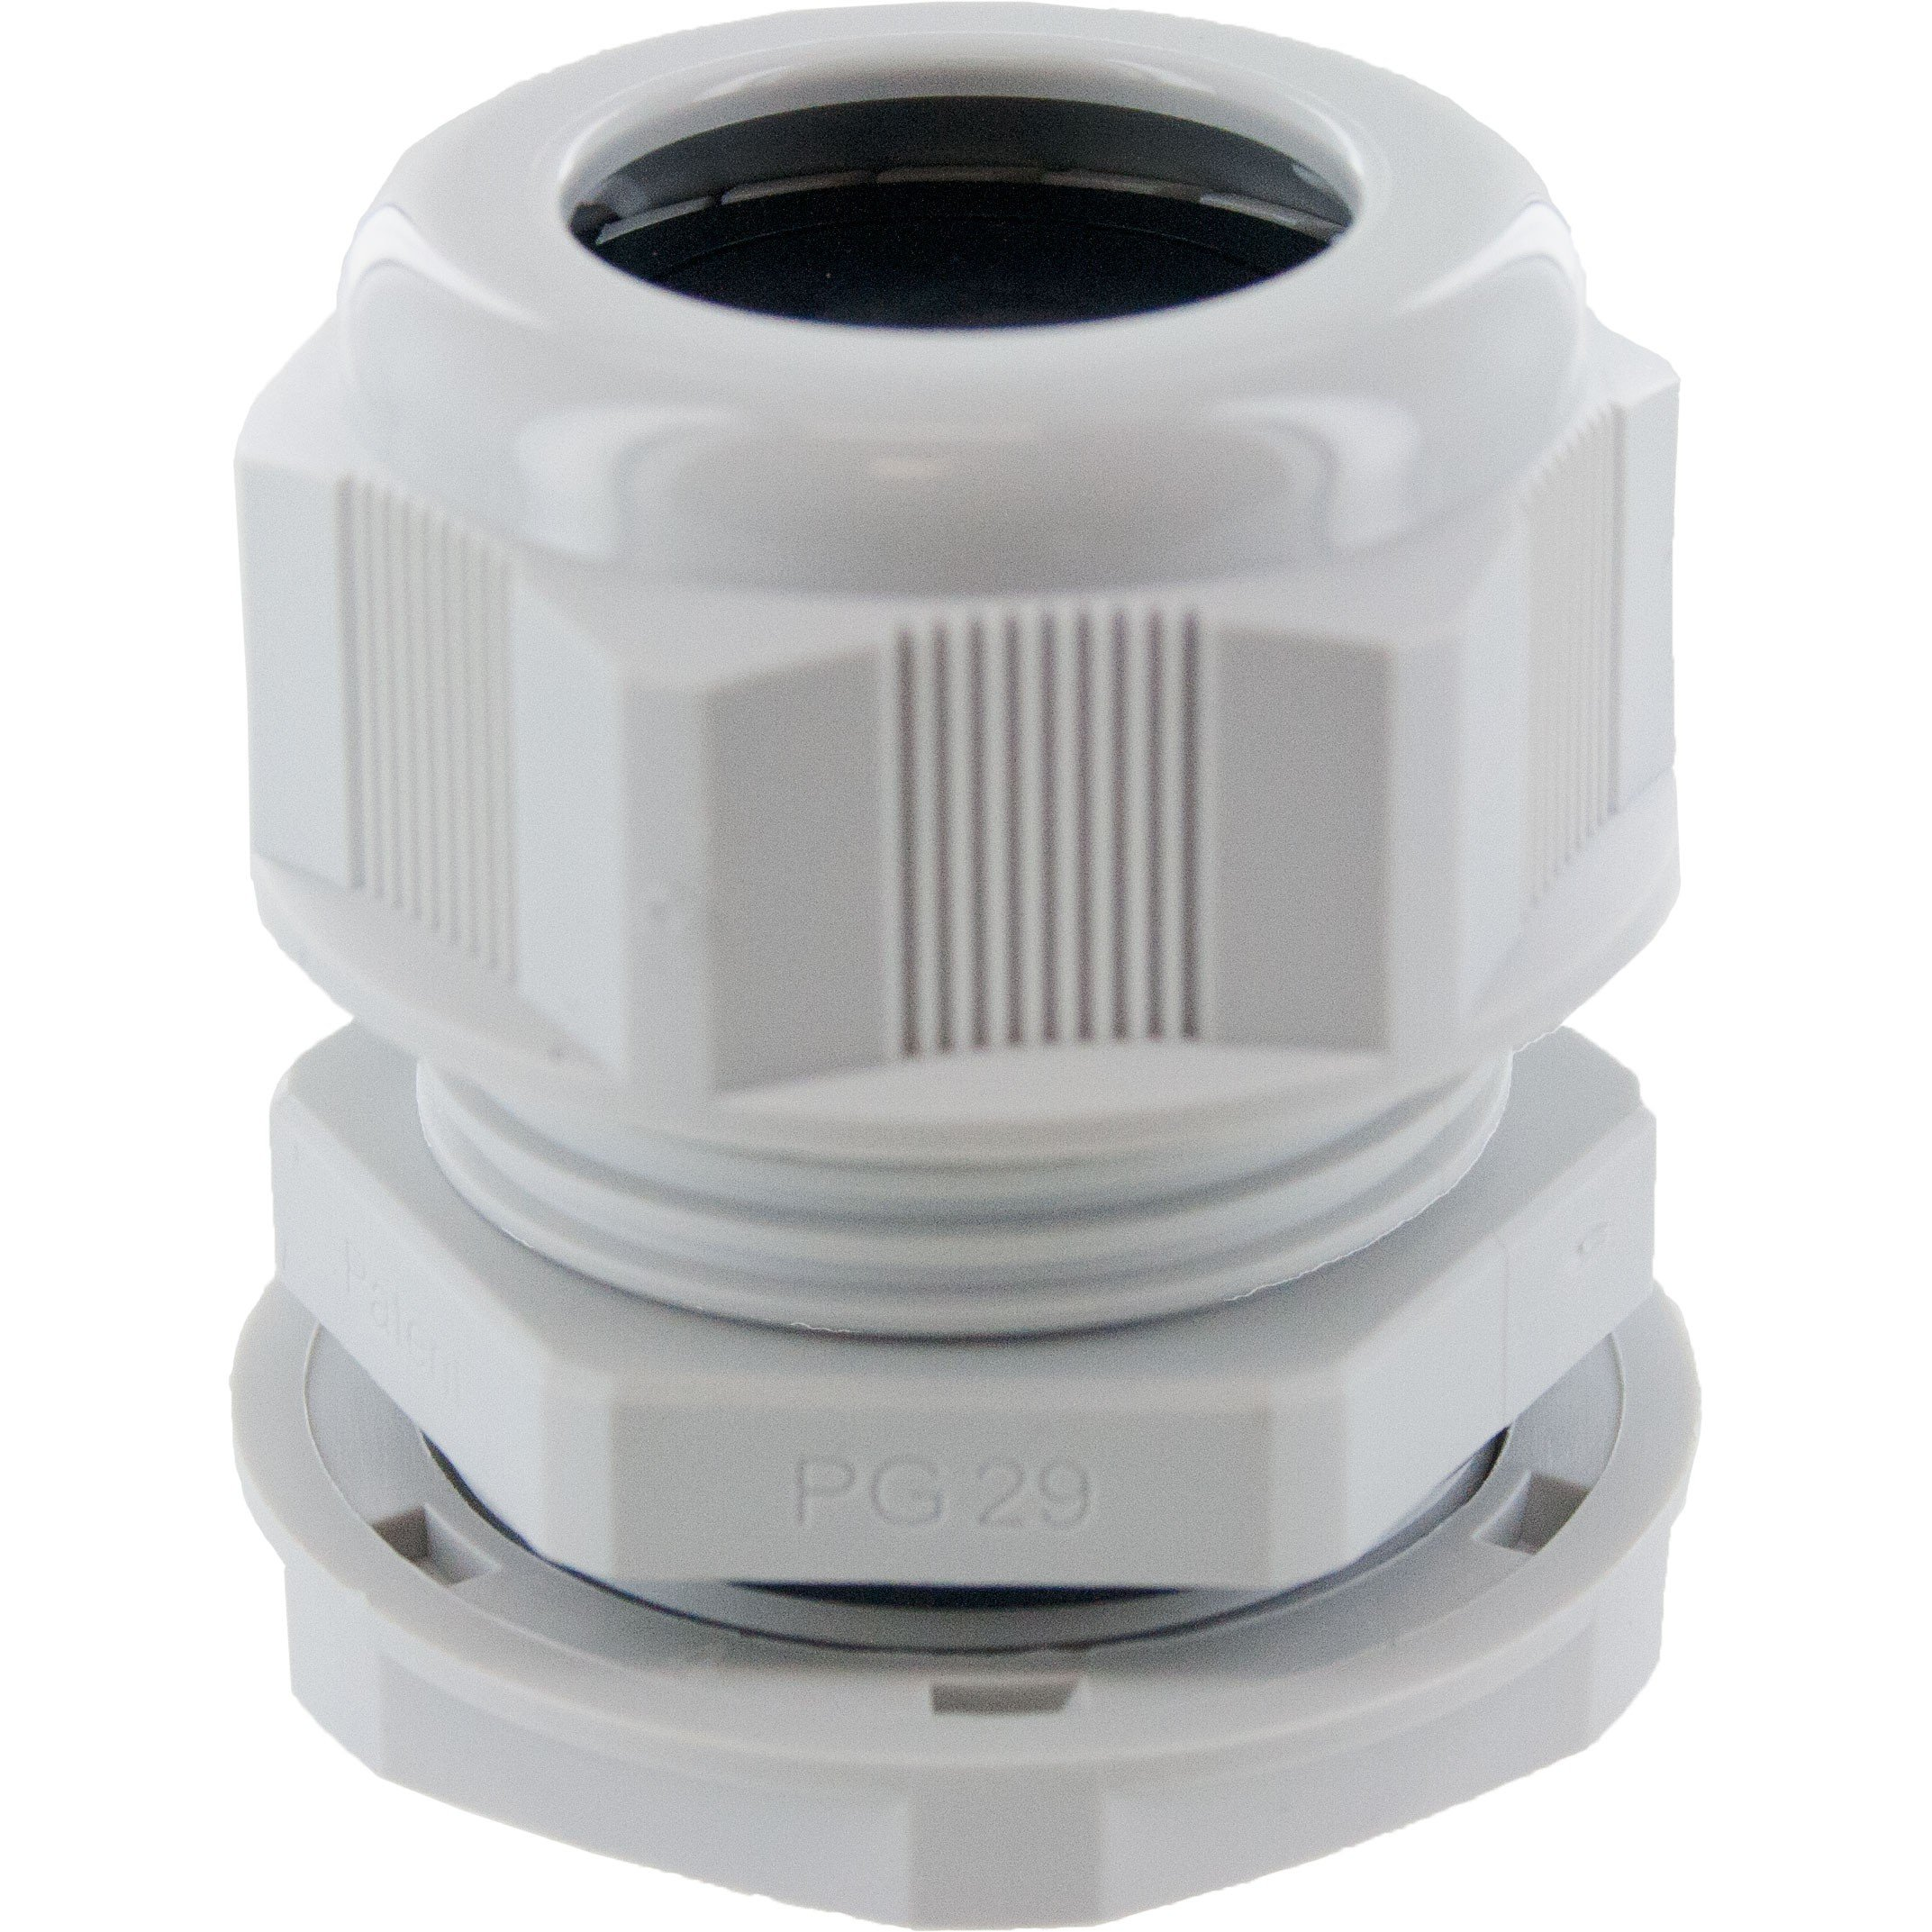 Nylon Dome Cap Cable Gland PG29 Gray